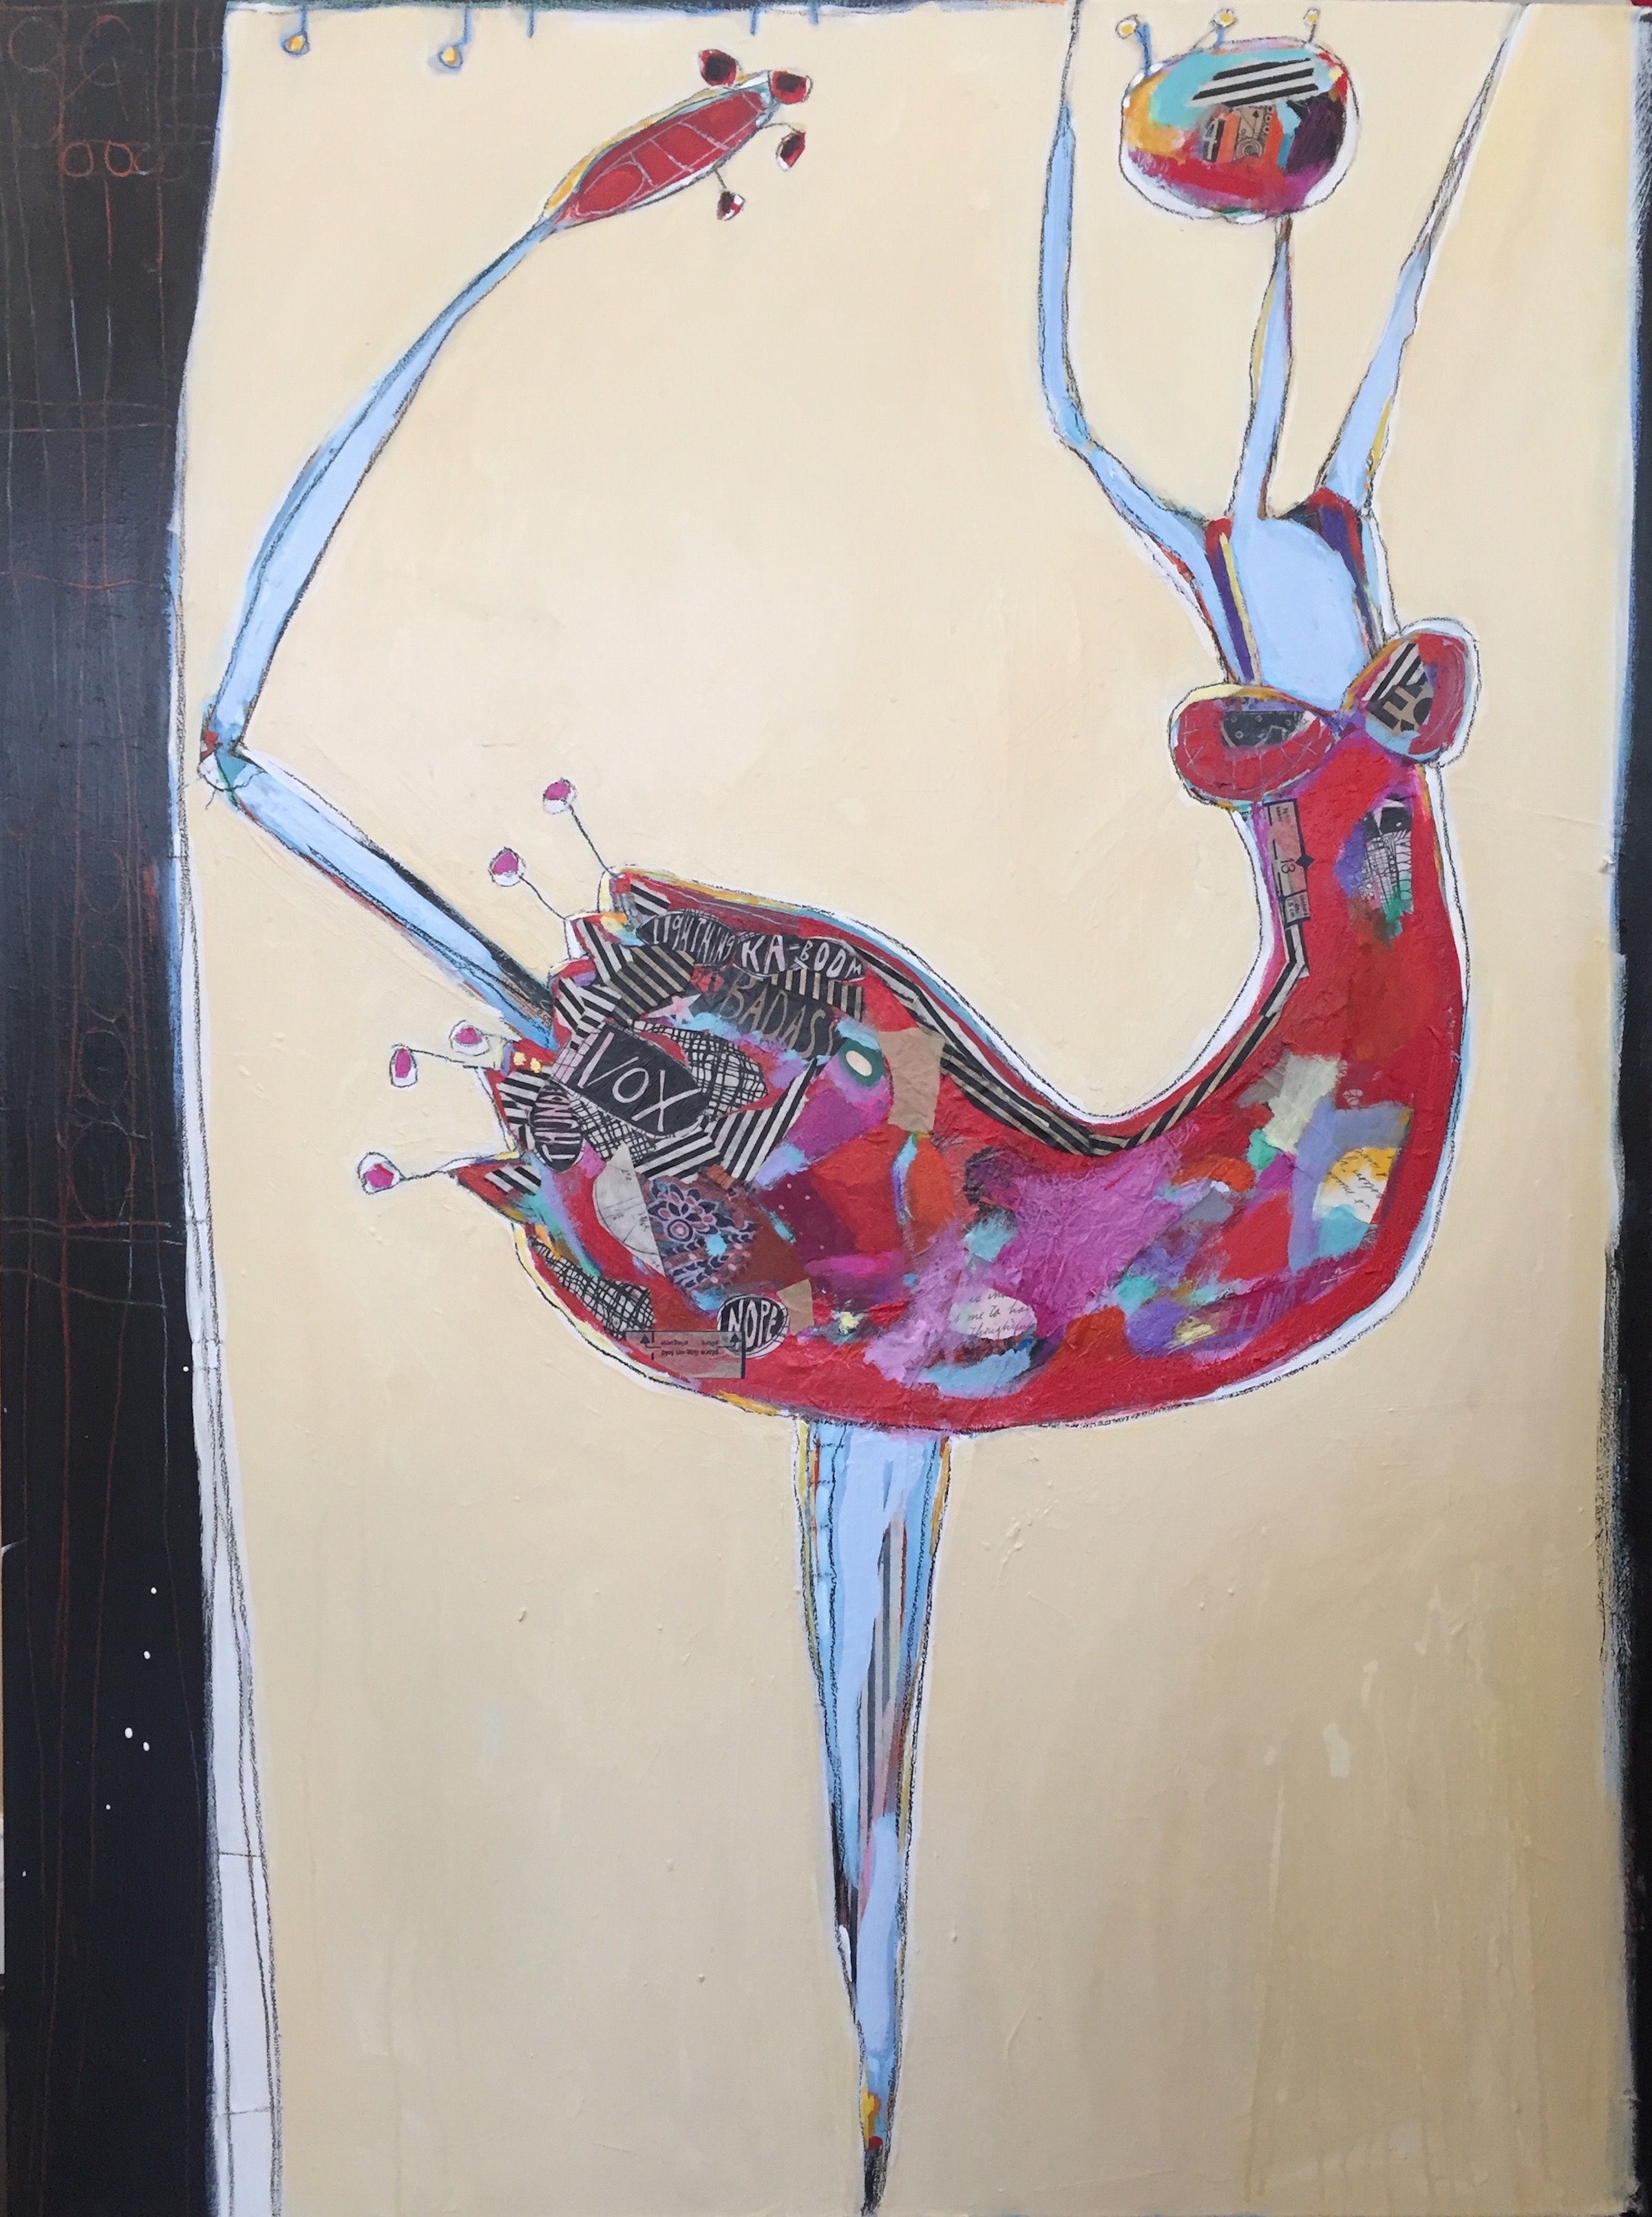 Abstract, Figurative, Mixed Media, Painting, Collage